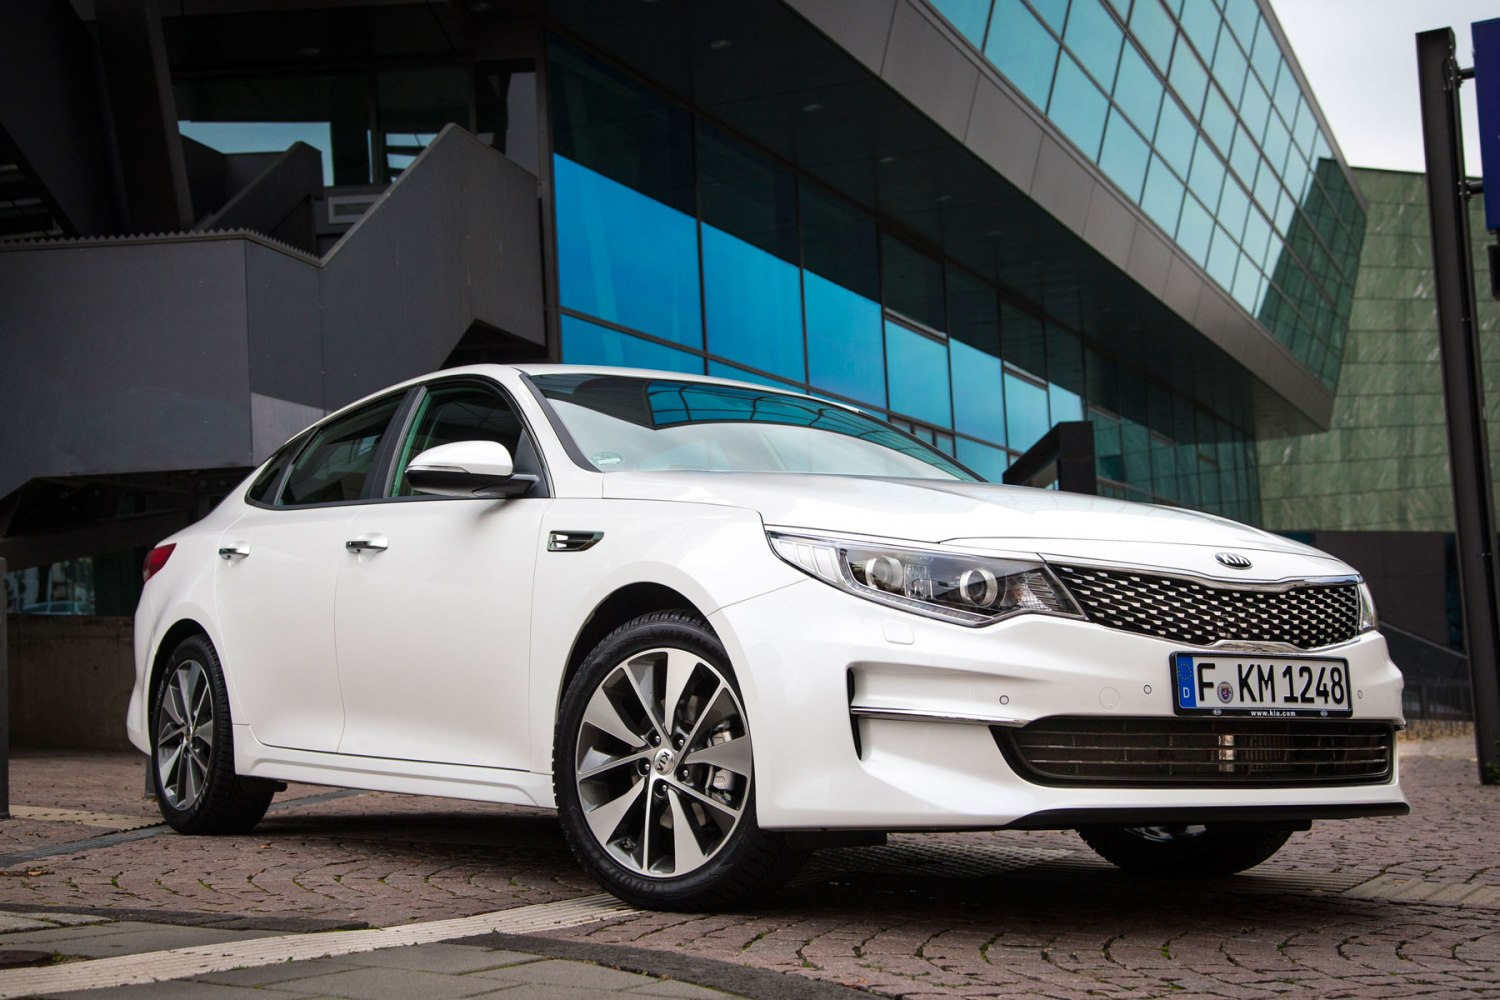 Kia Optima UK prices